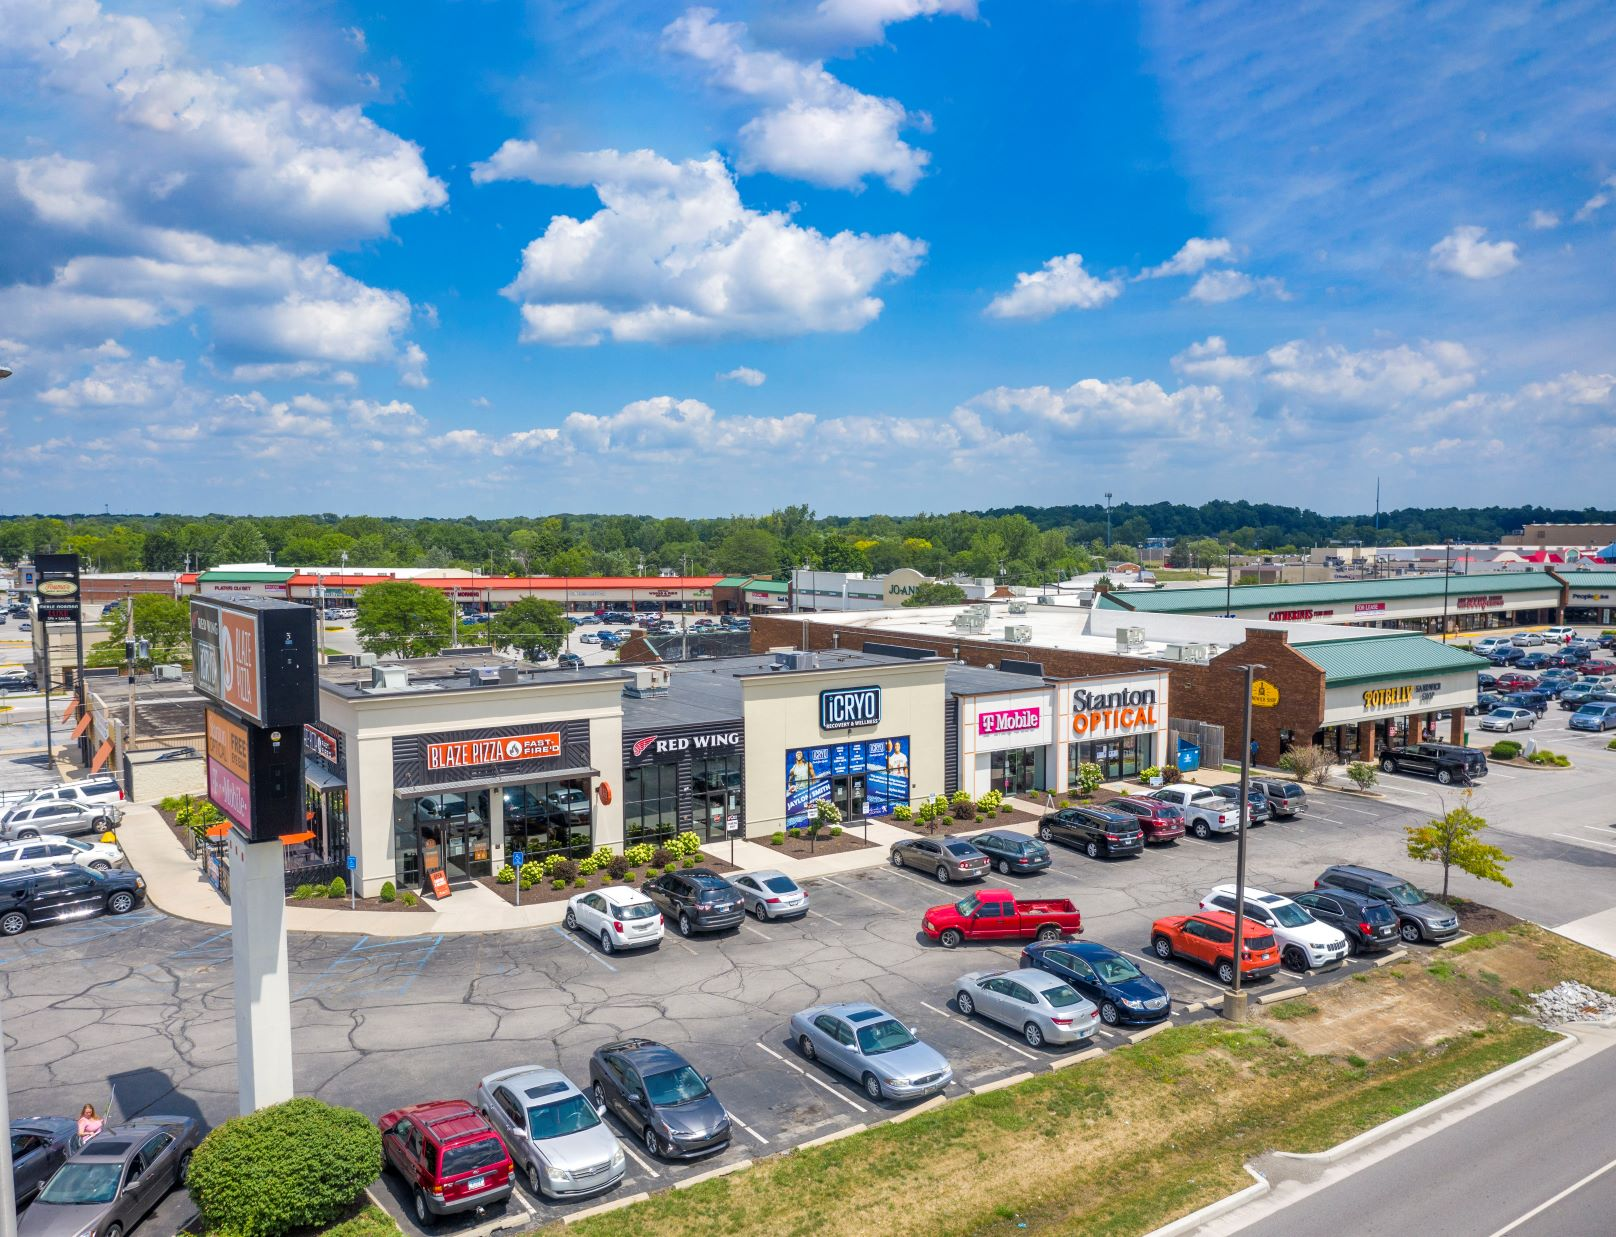 Hanley Investment Group Sells Two Multi-Tenant Retail Properties in Fort Wayne, Indiana for $11.8 Million to International Buyer